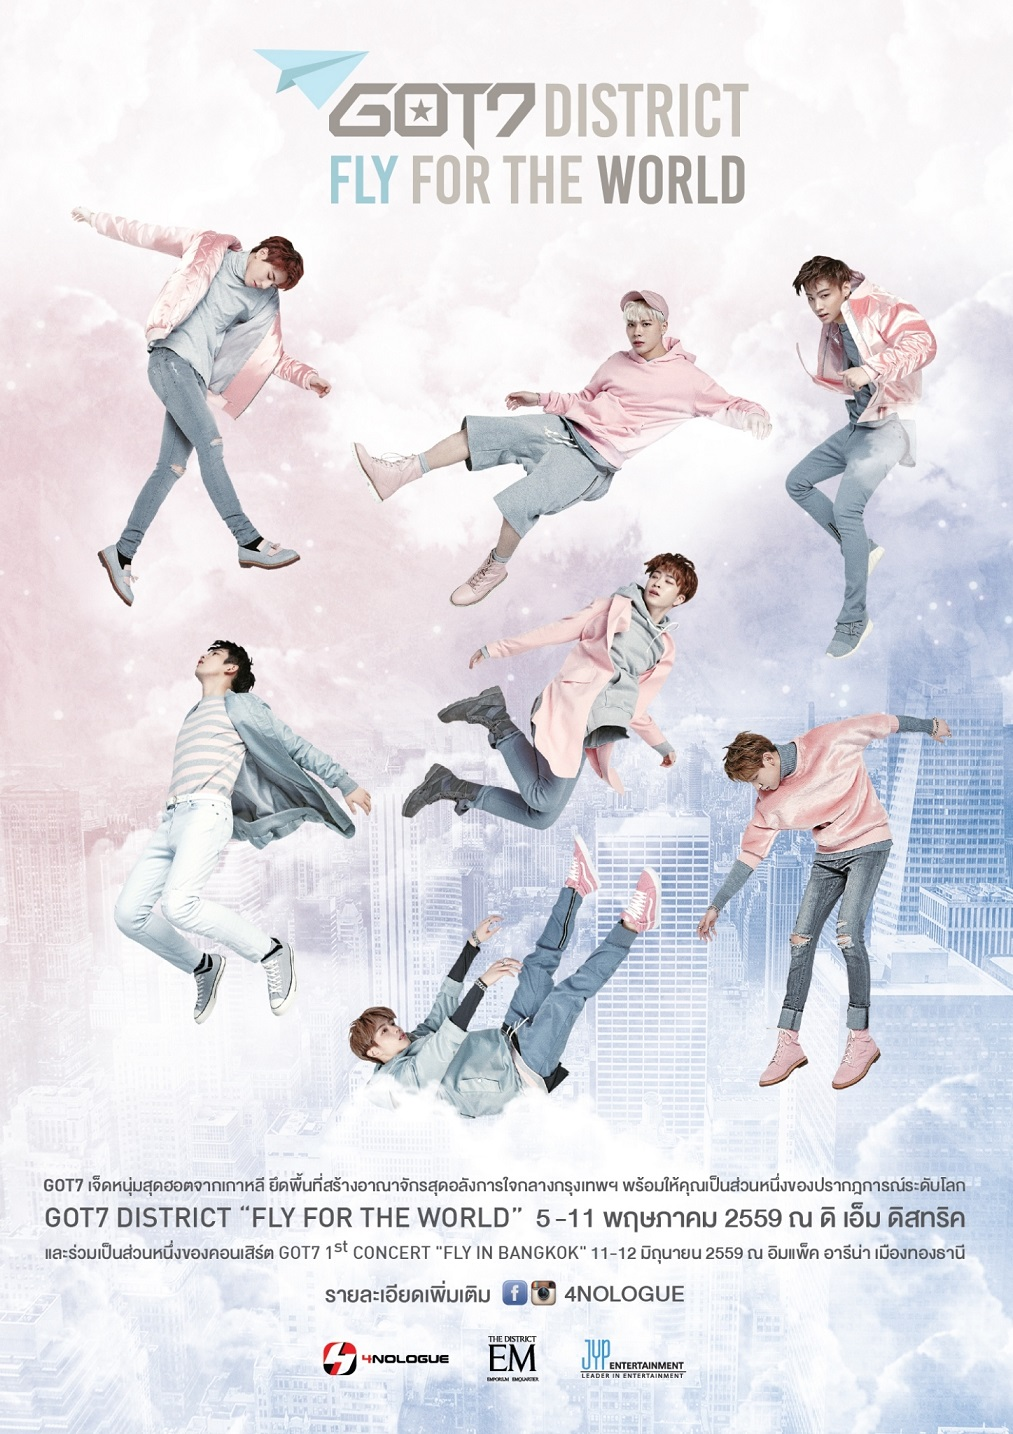 2016.04.25 GOT7 DISTRCIT 'FLY FOR THE WORLD' Poster  1308